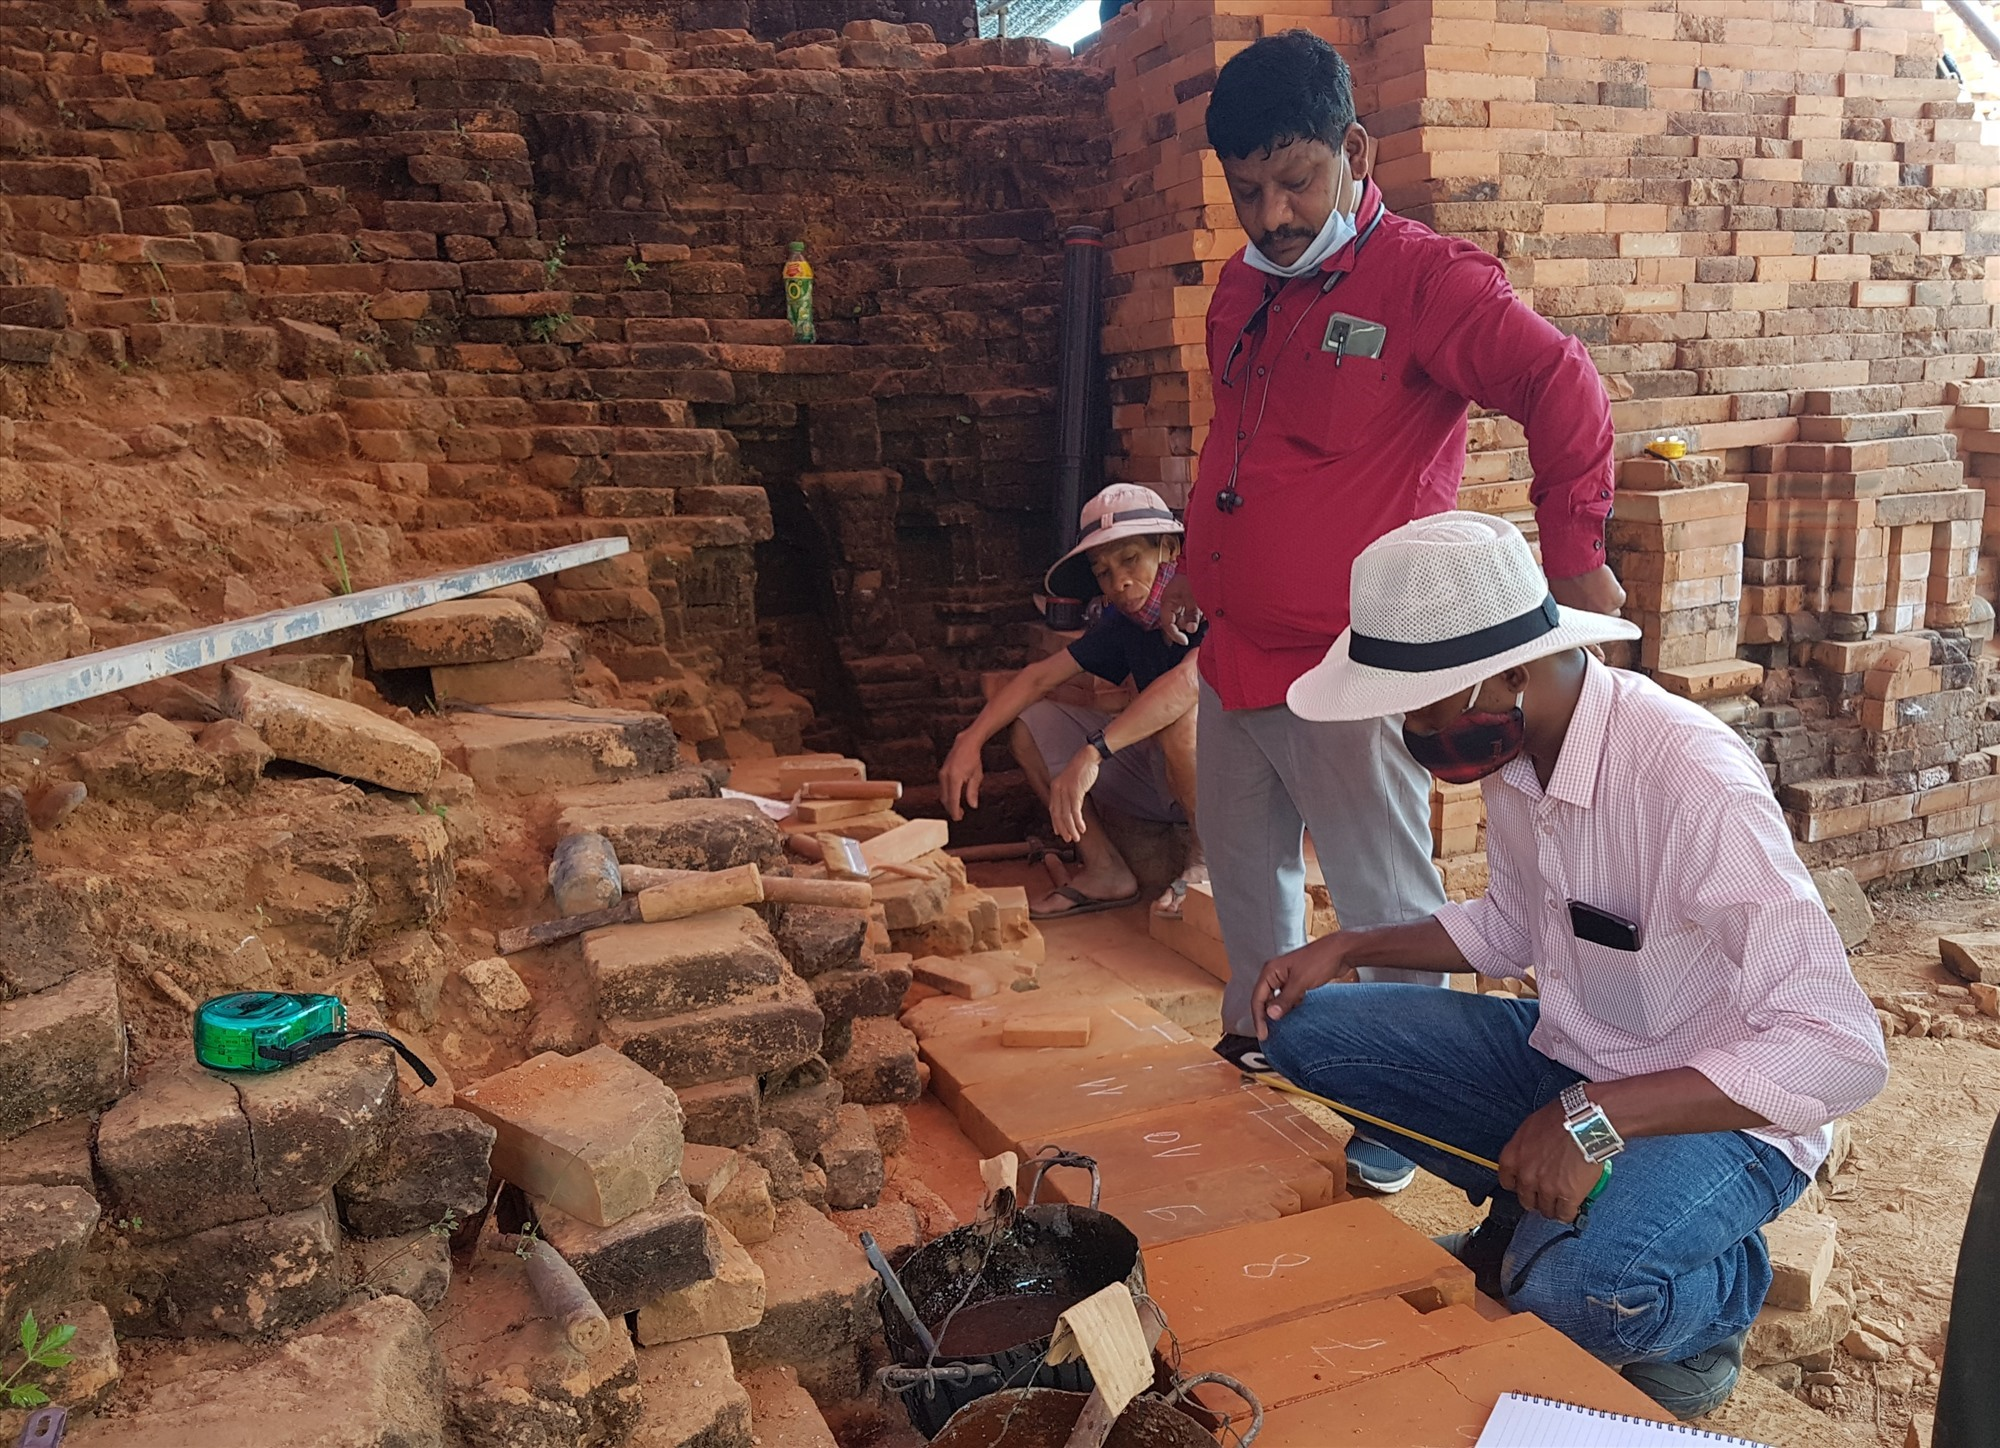 Indian experts working at Group A of My Son Sanctuary.